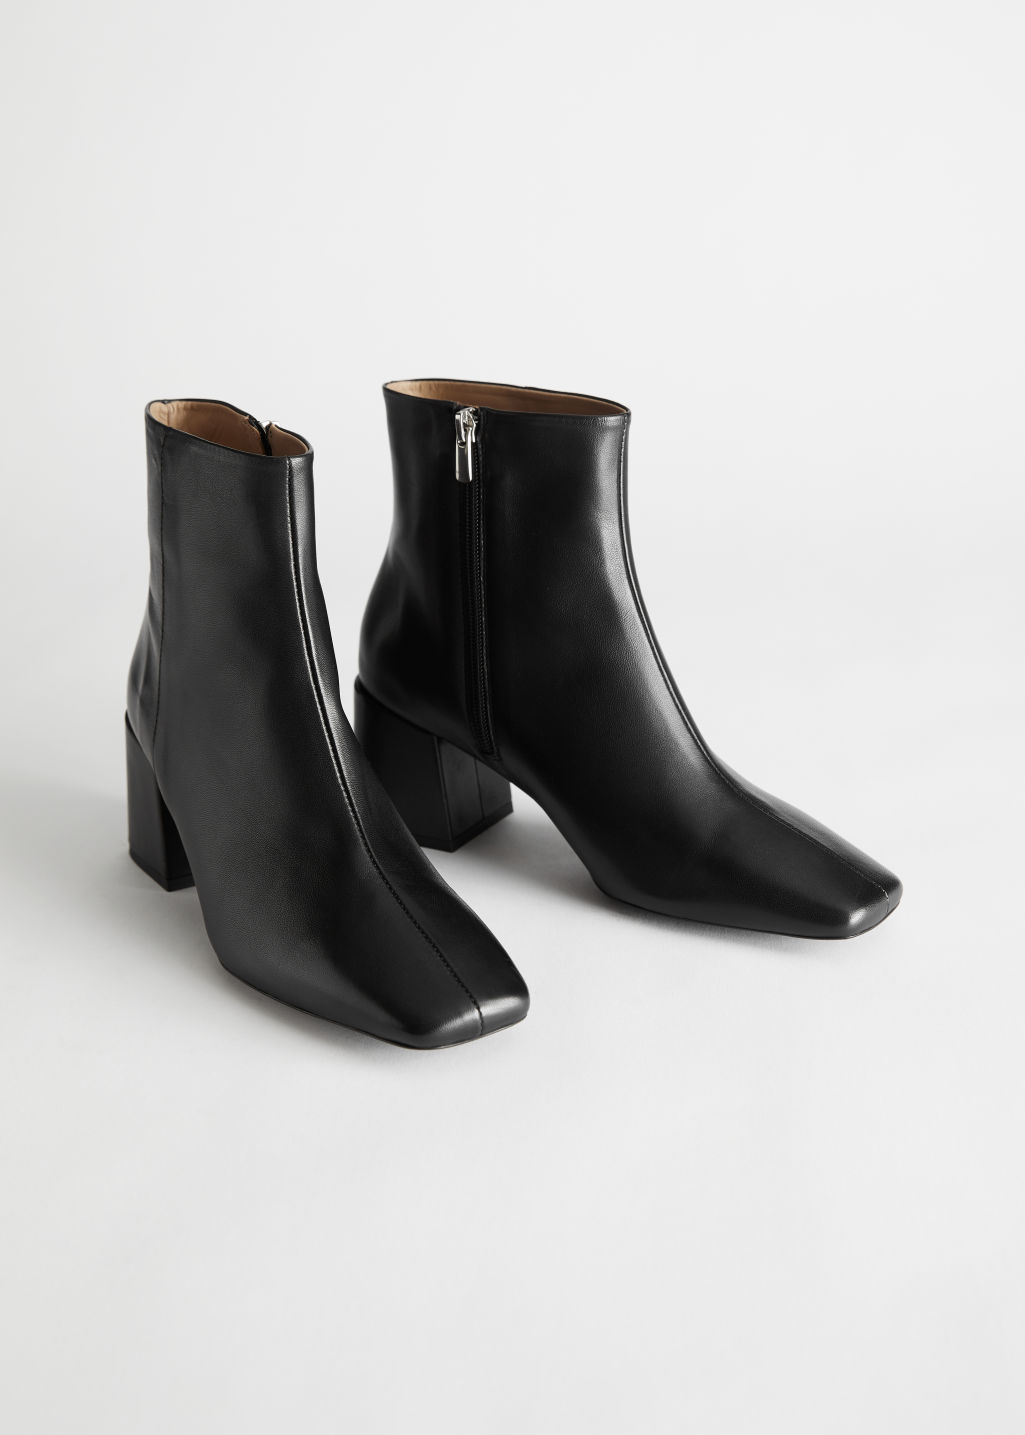 StillLife Front Image of Stories Leather Square Toe Heeled Boots in Black